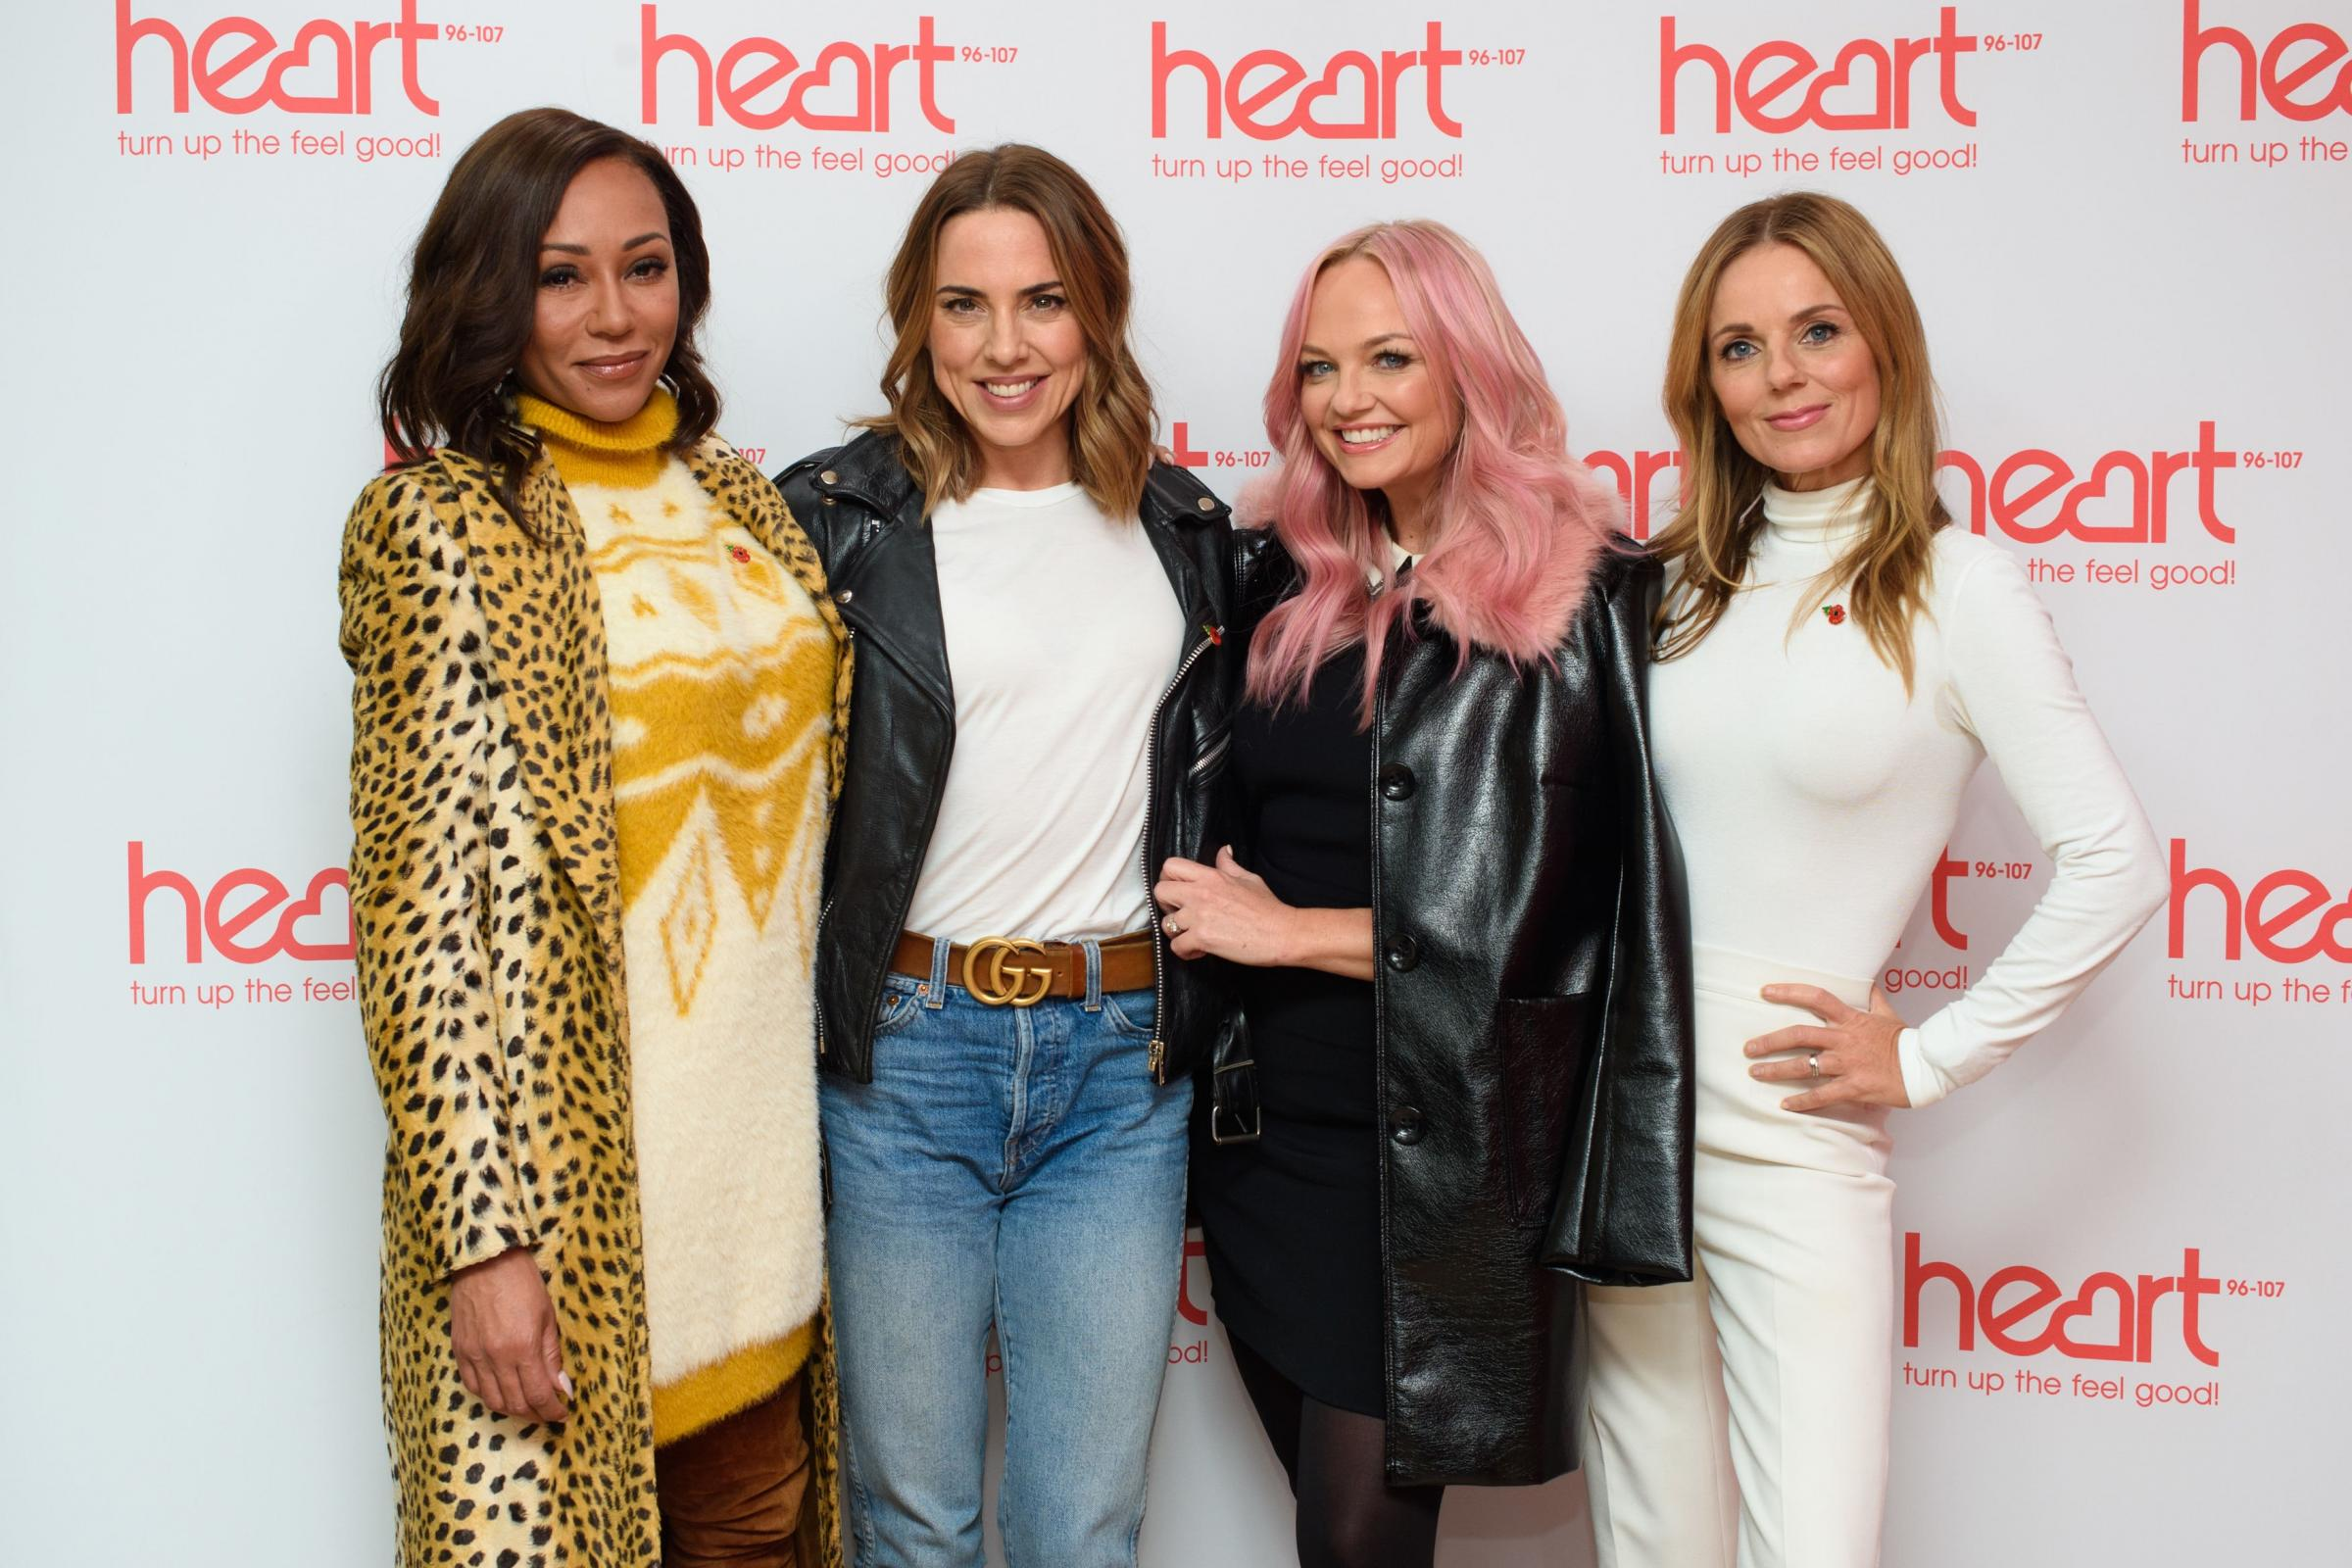 Melanie Brown, Melanie Chisholm, Emma Bunton and Geri Horner at a live appearance